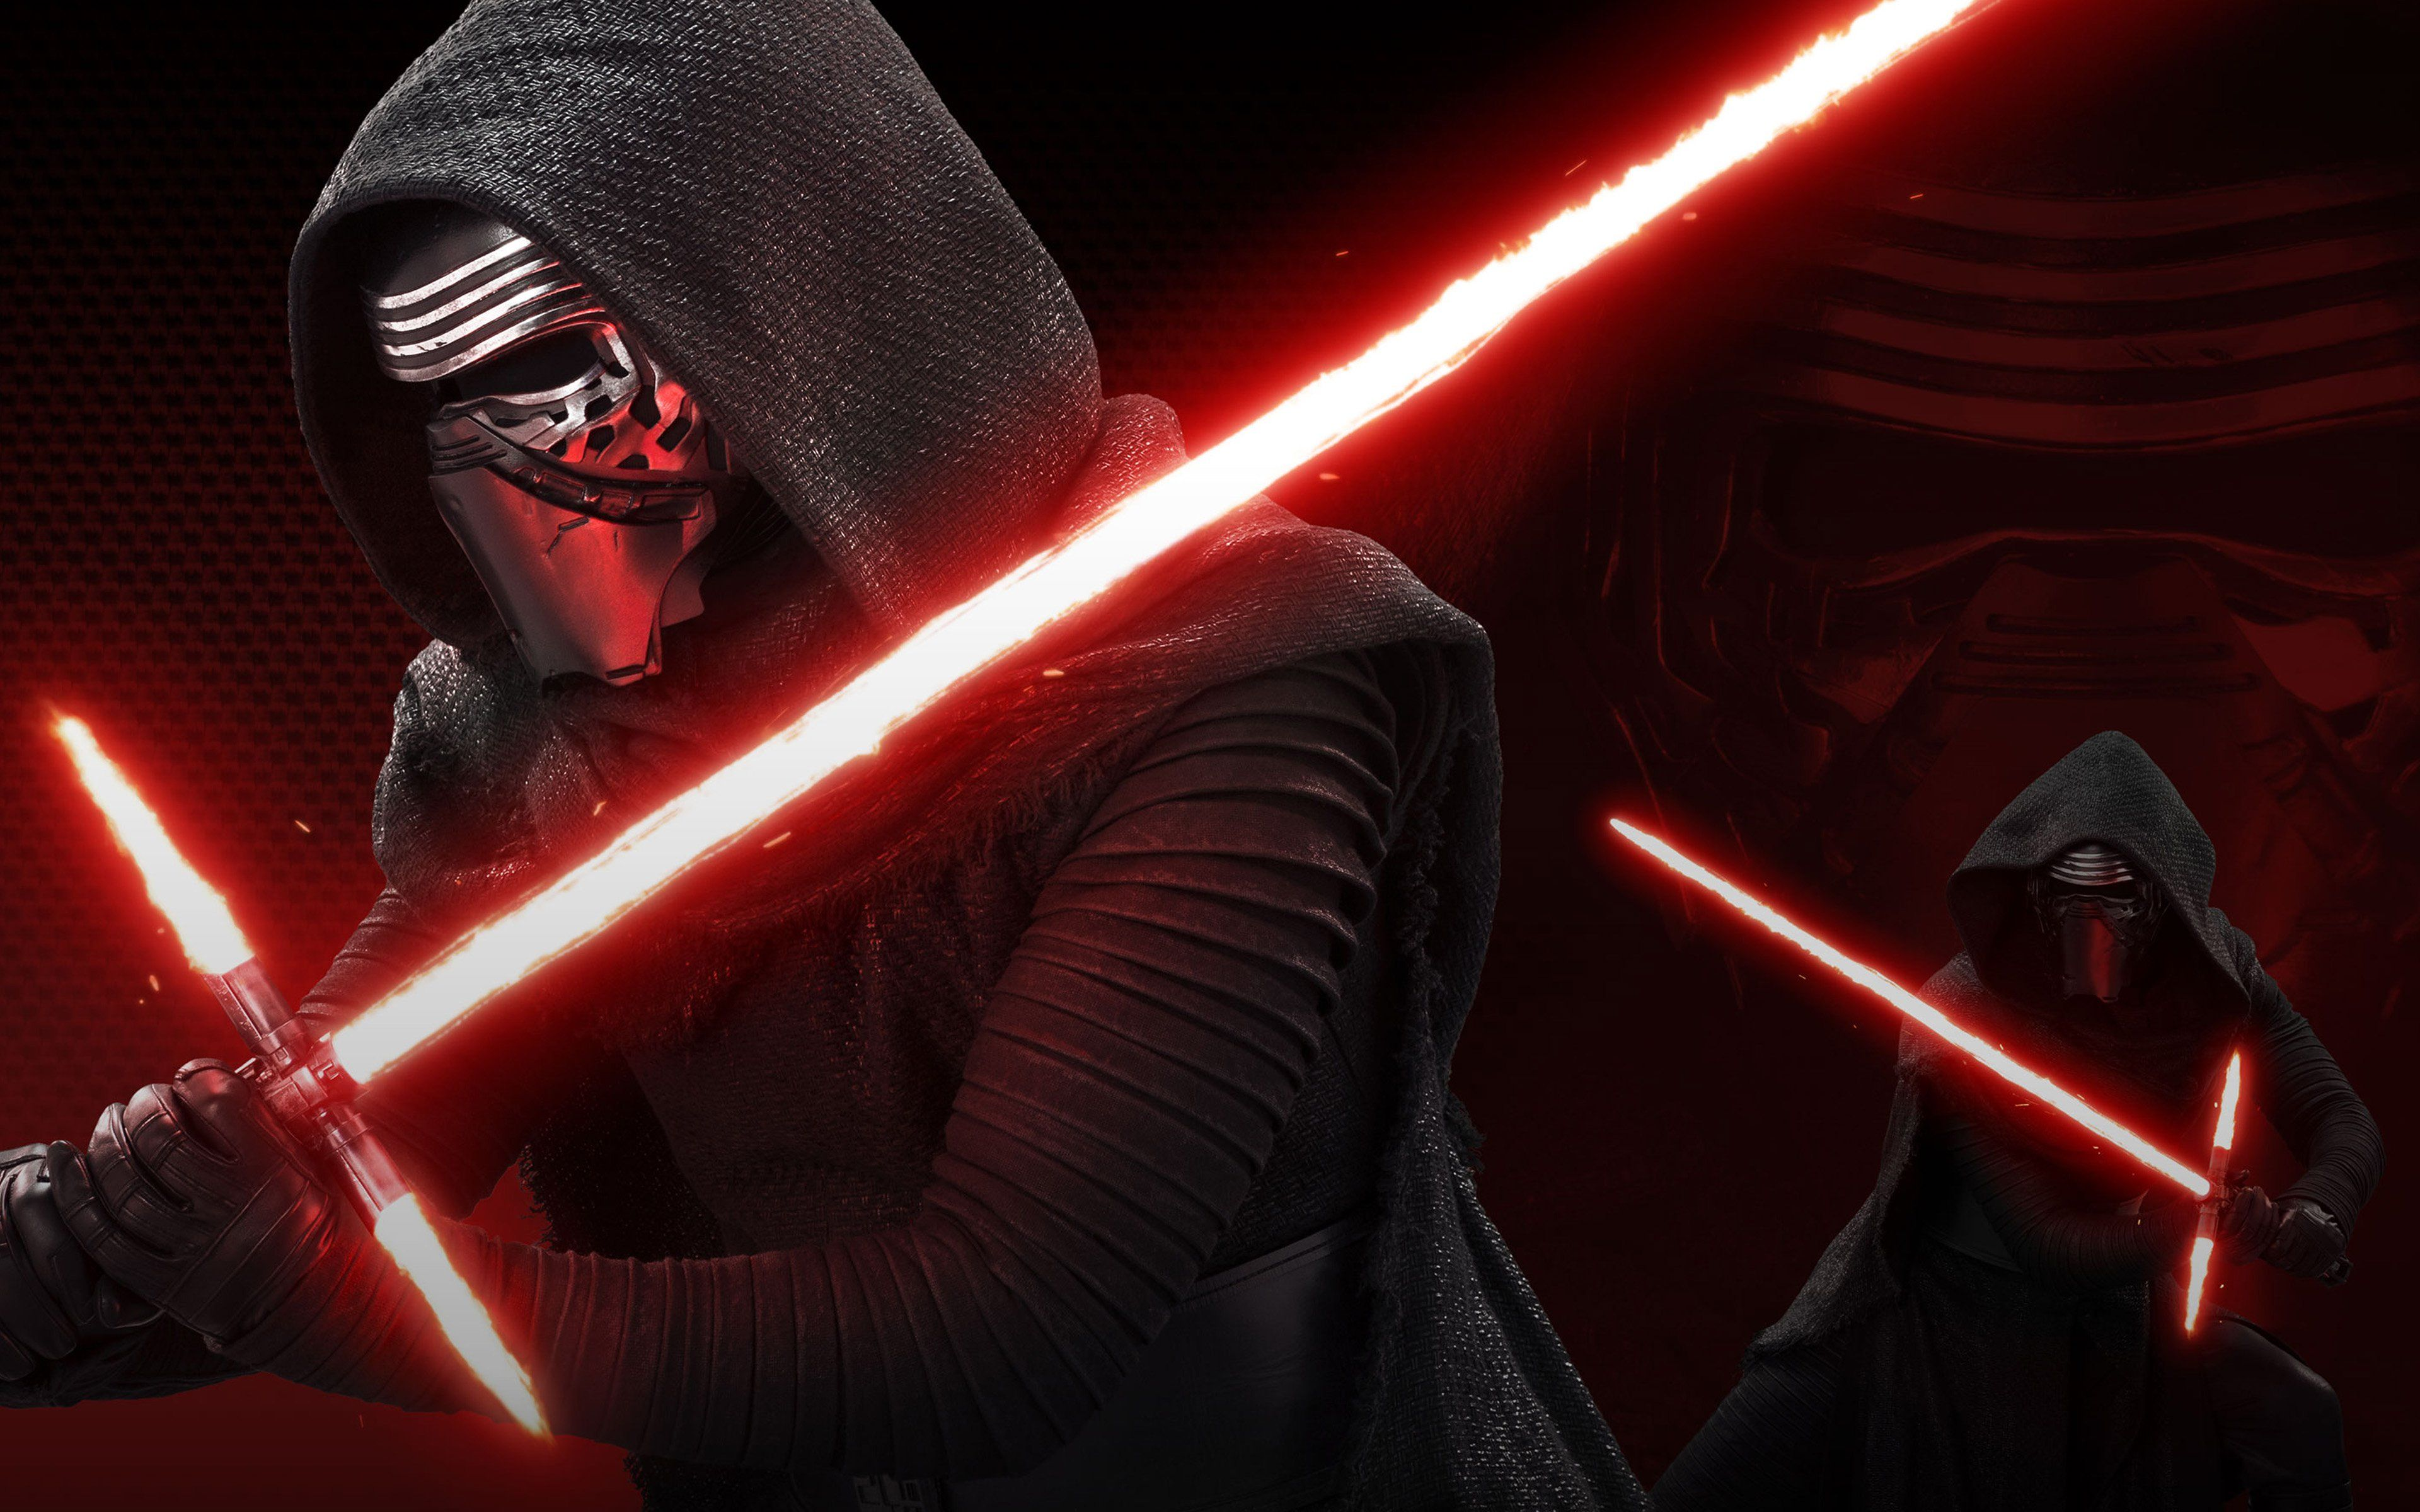 Pin by Ian Fahringer on Star Wars (With images) Star